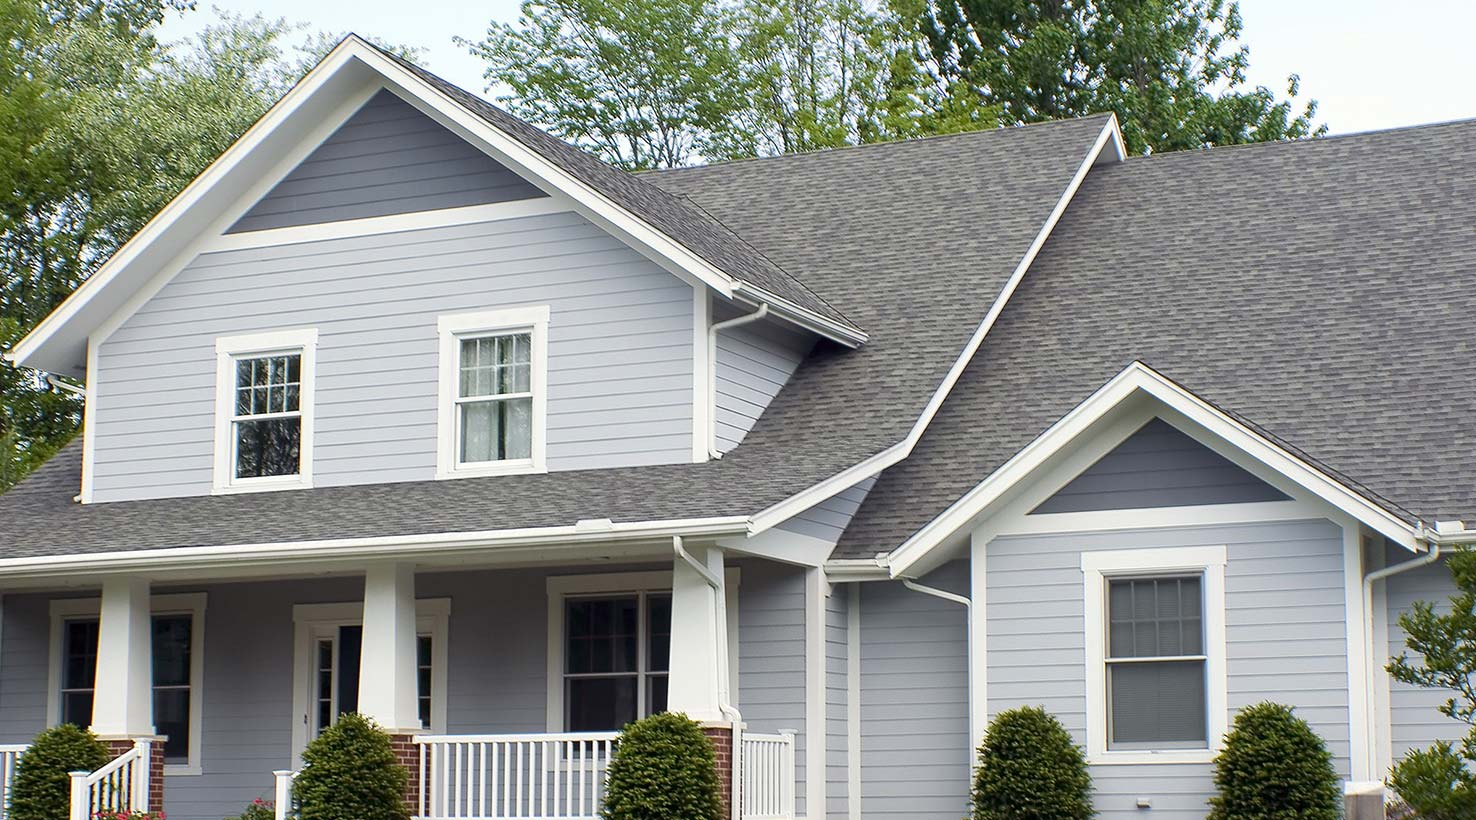 yellows neutrals neutrals neutrals - Exterior Coatings For Houses